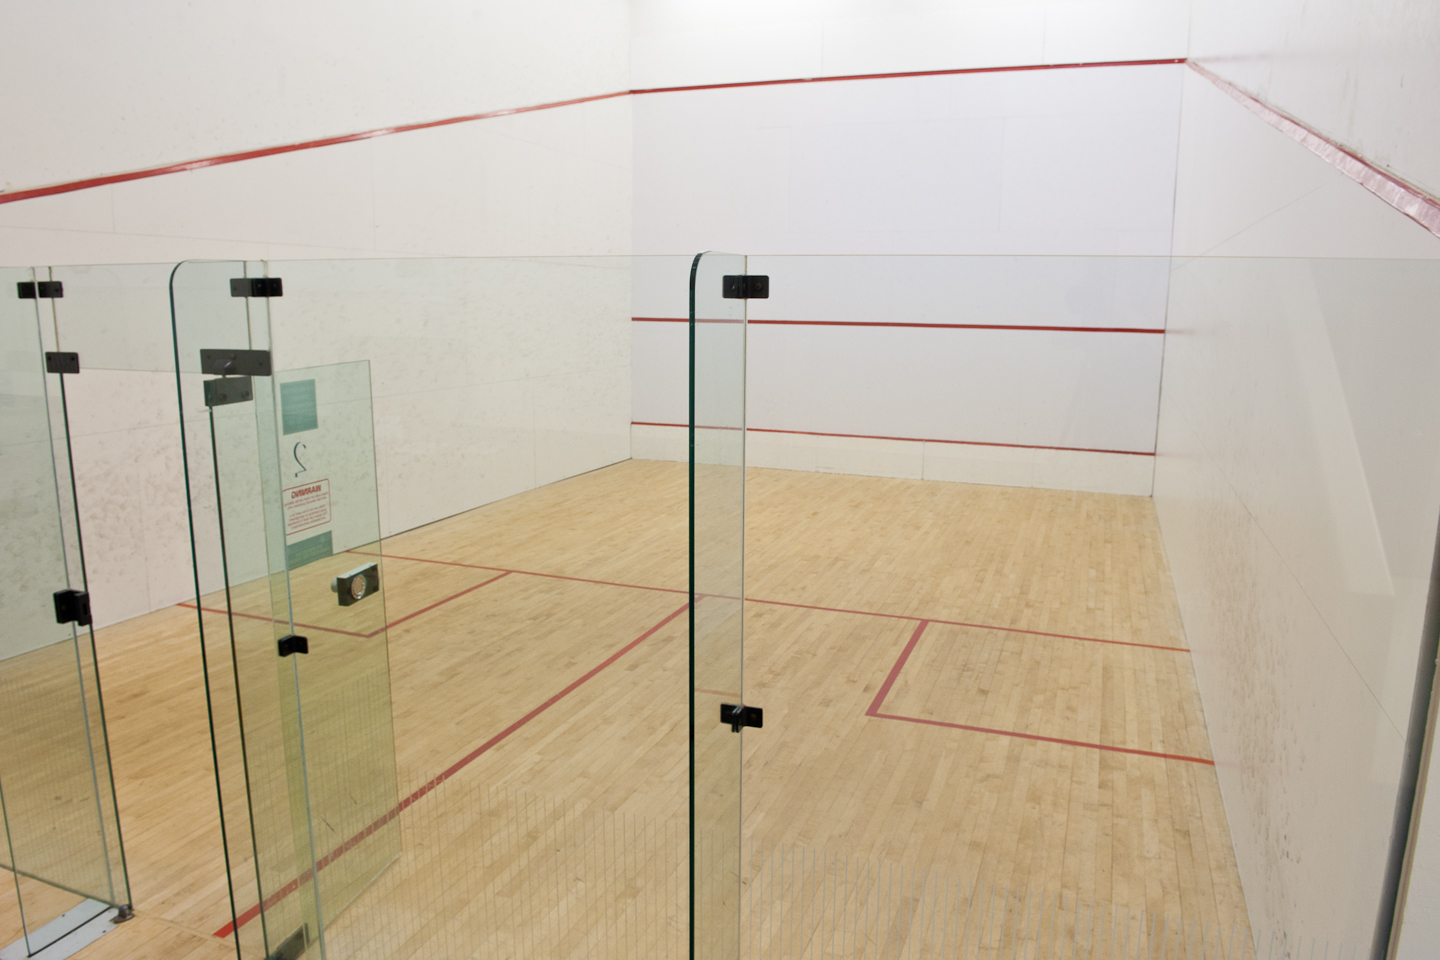 Squash team overcomes early season obstacle, finishes on strong note